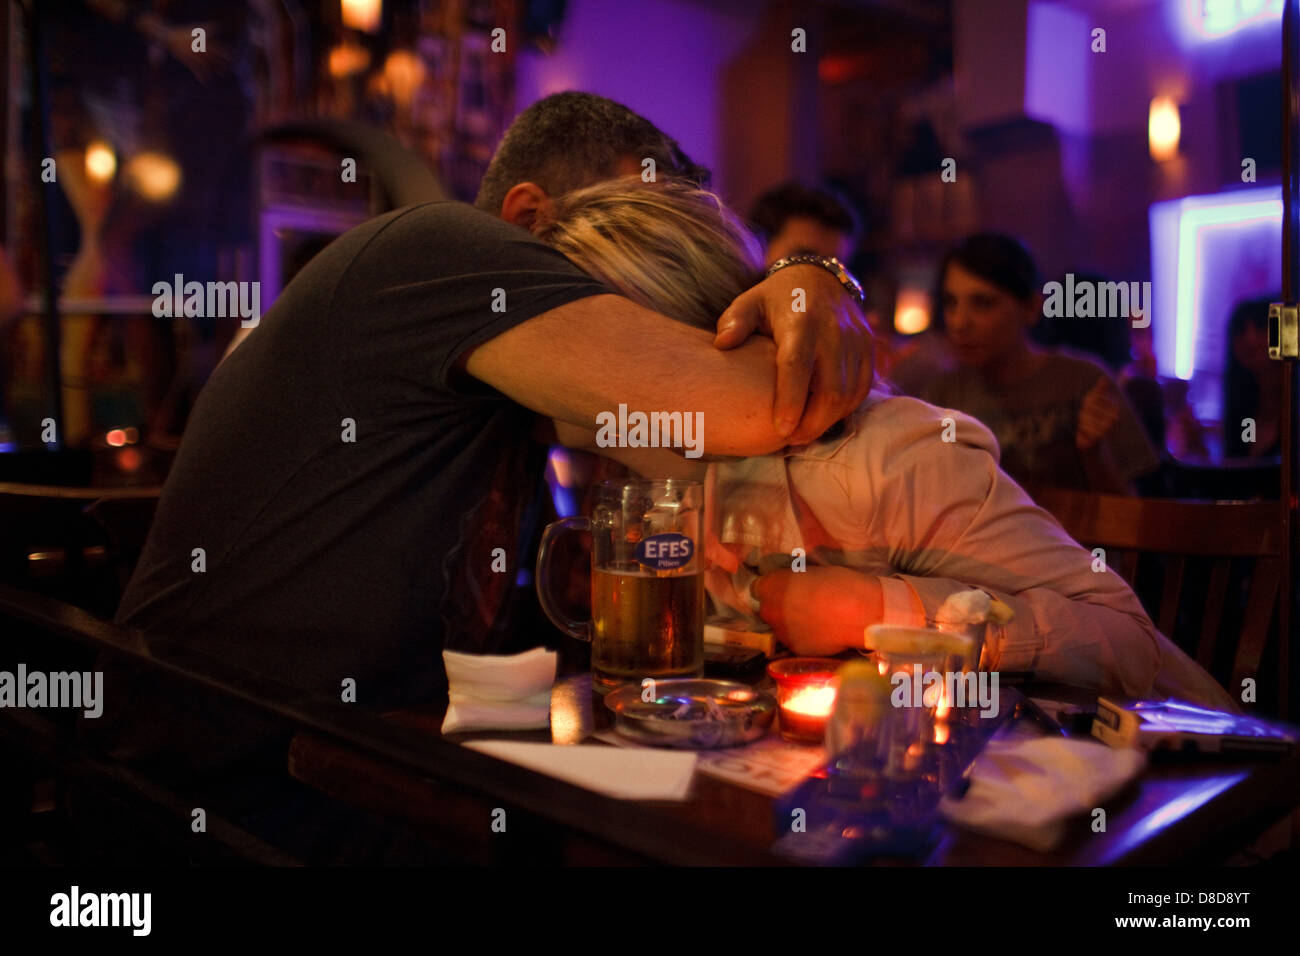 A couple embracing in a bar, Nightlife in Beyoglu, Istanbul, Turkey - Stock Image